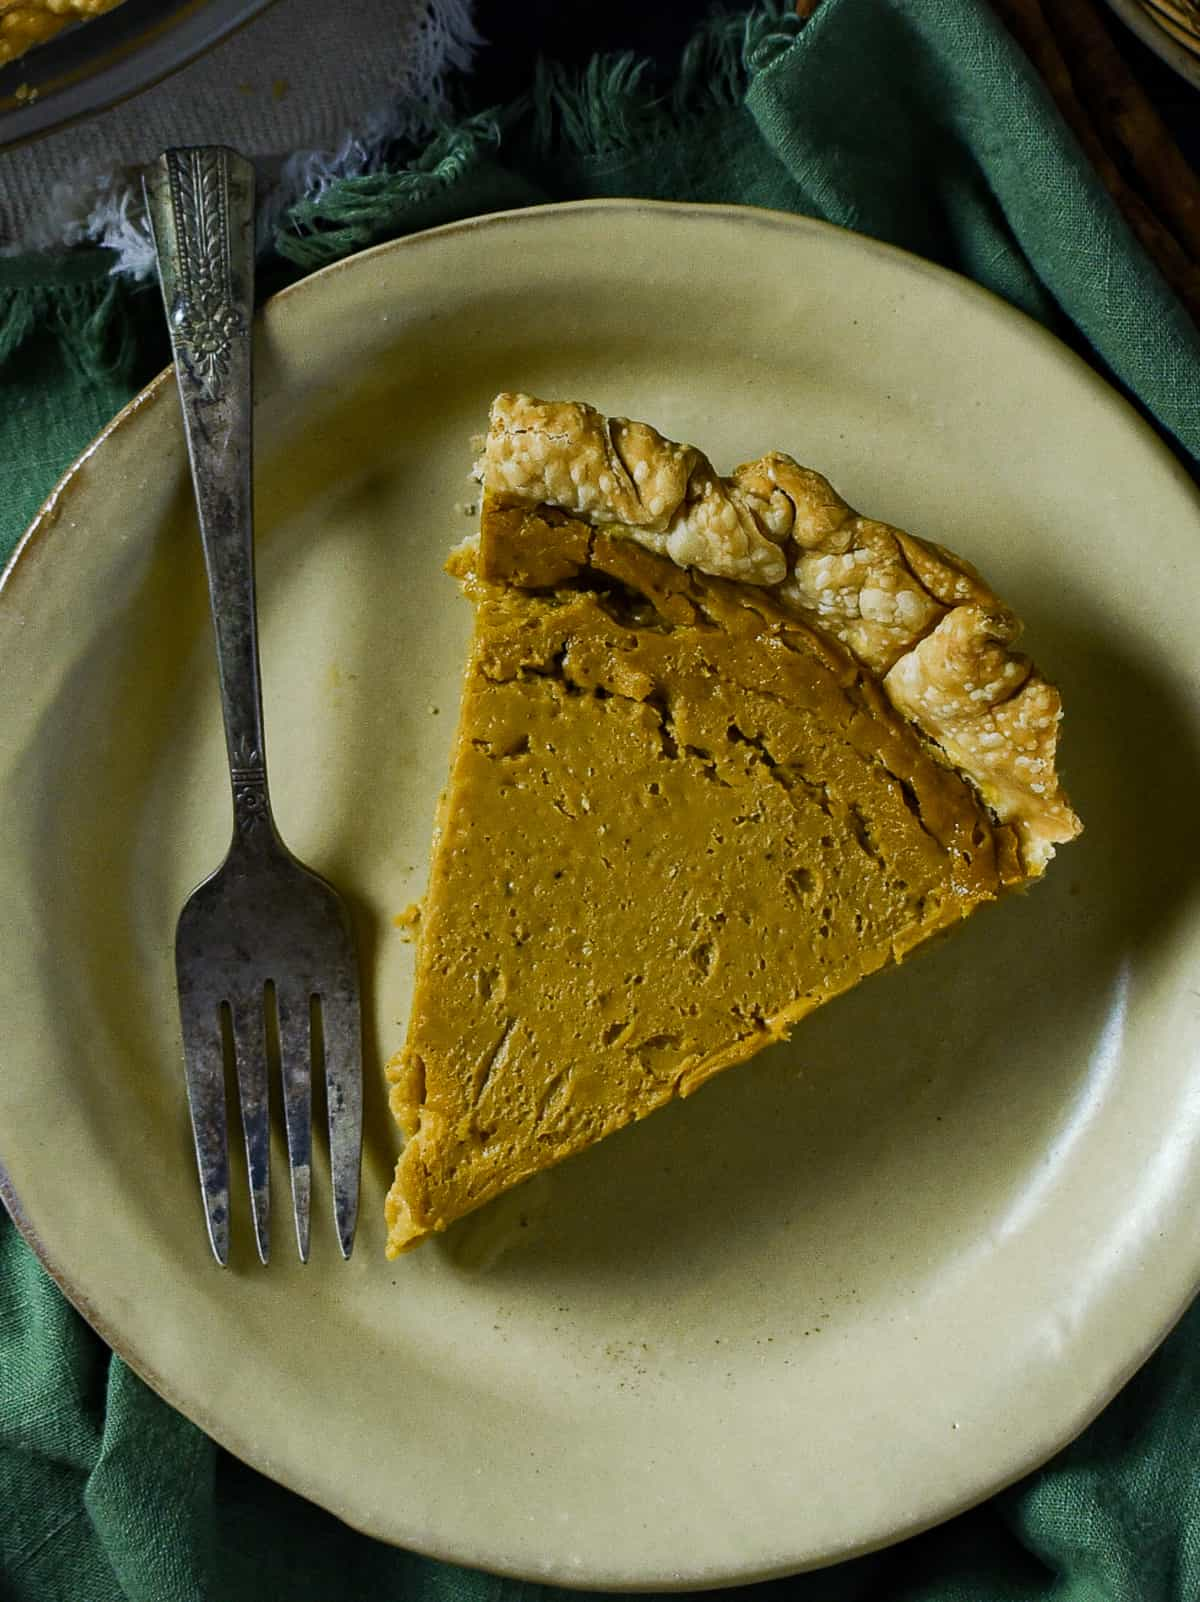 Slice of pie on a plate with fork.